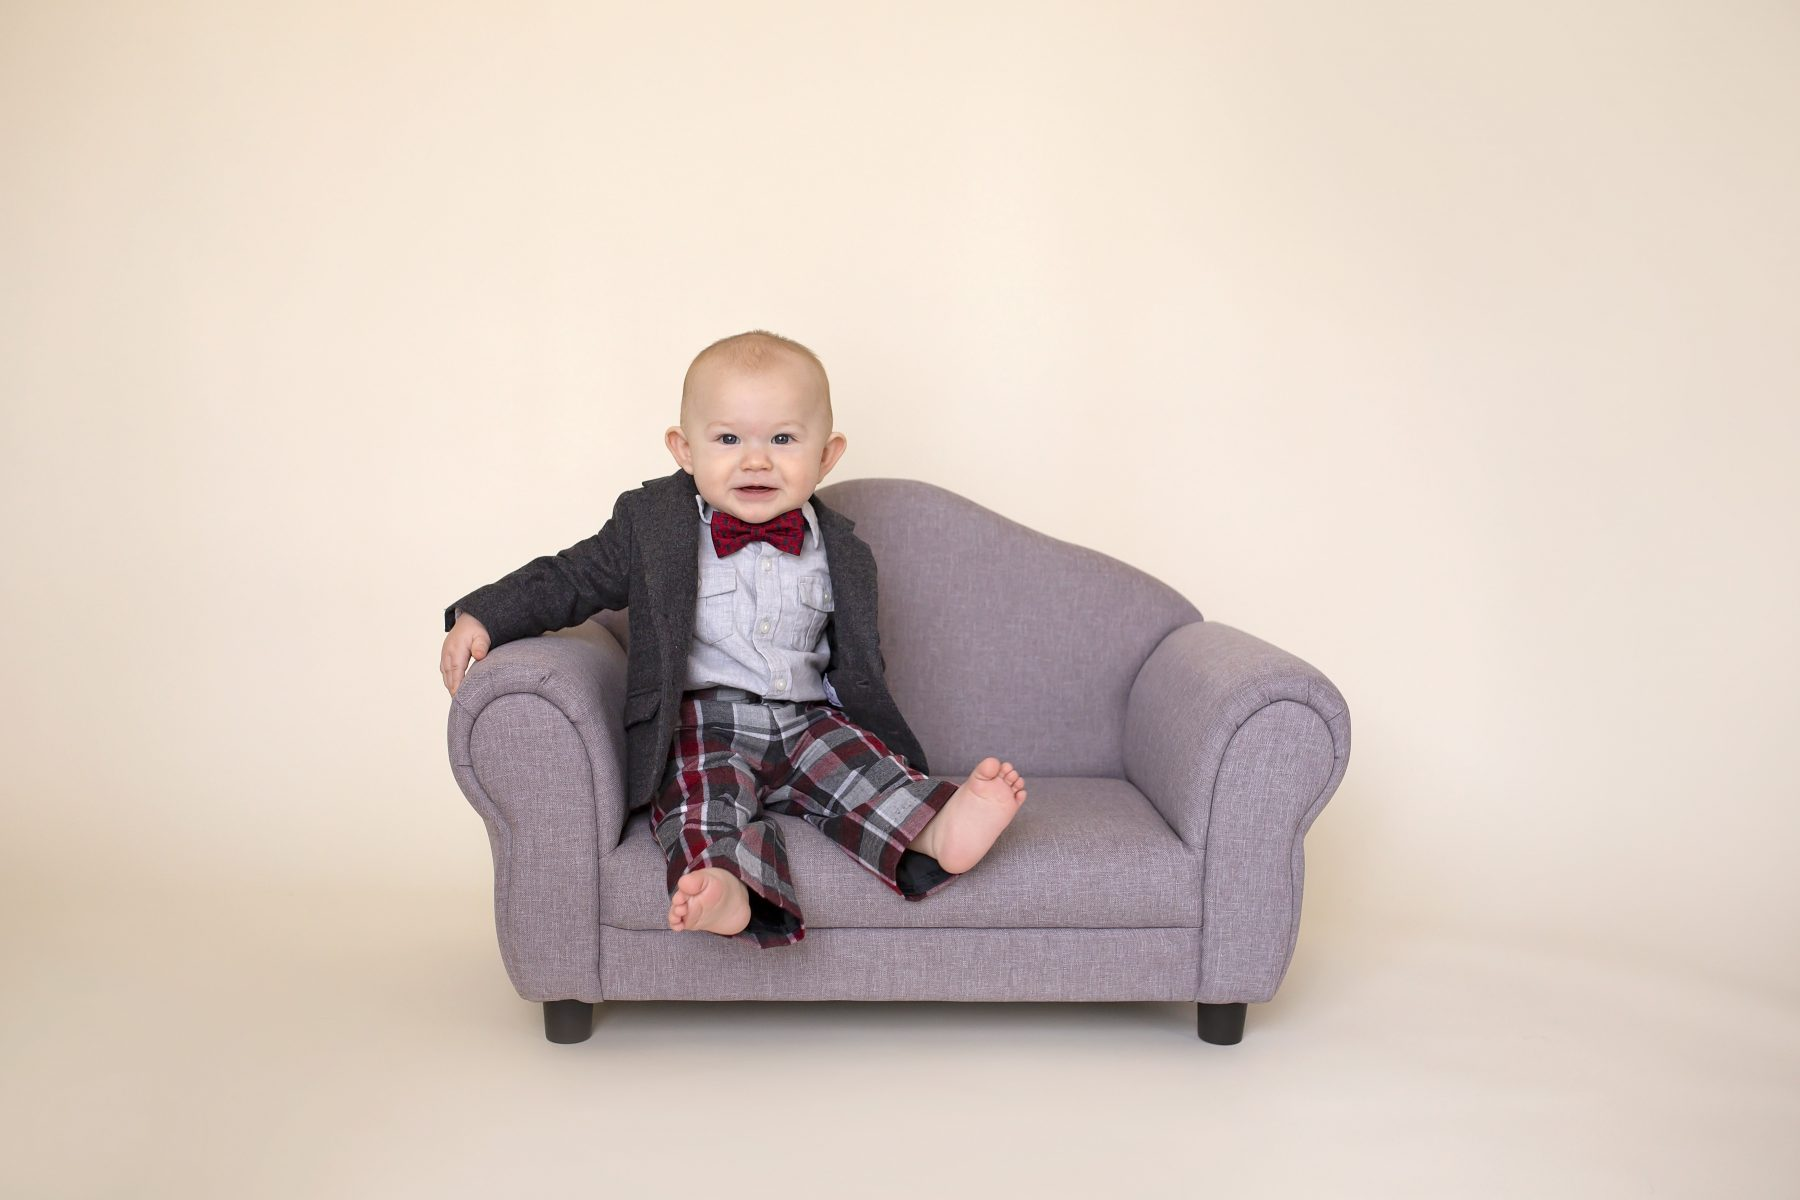 8 month old sitting on a tiny couch while wearing a suit and smiling